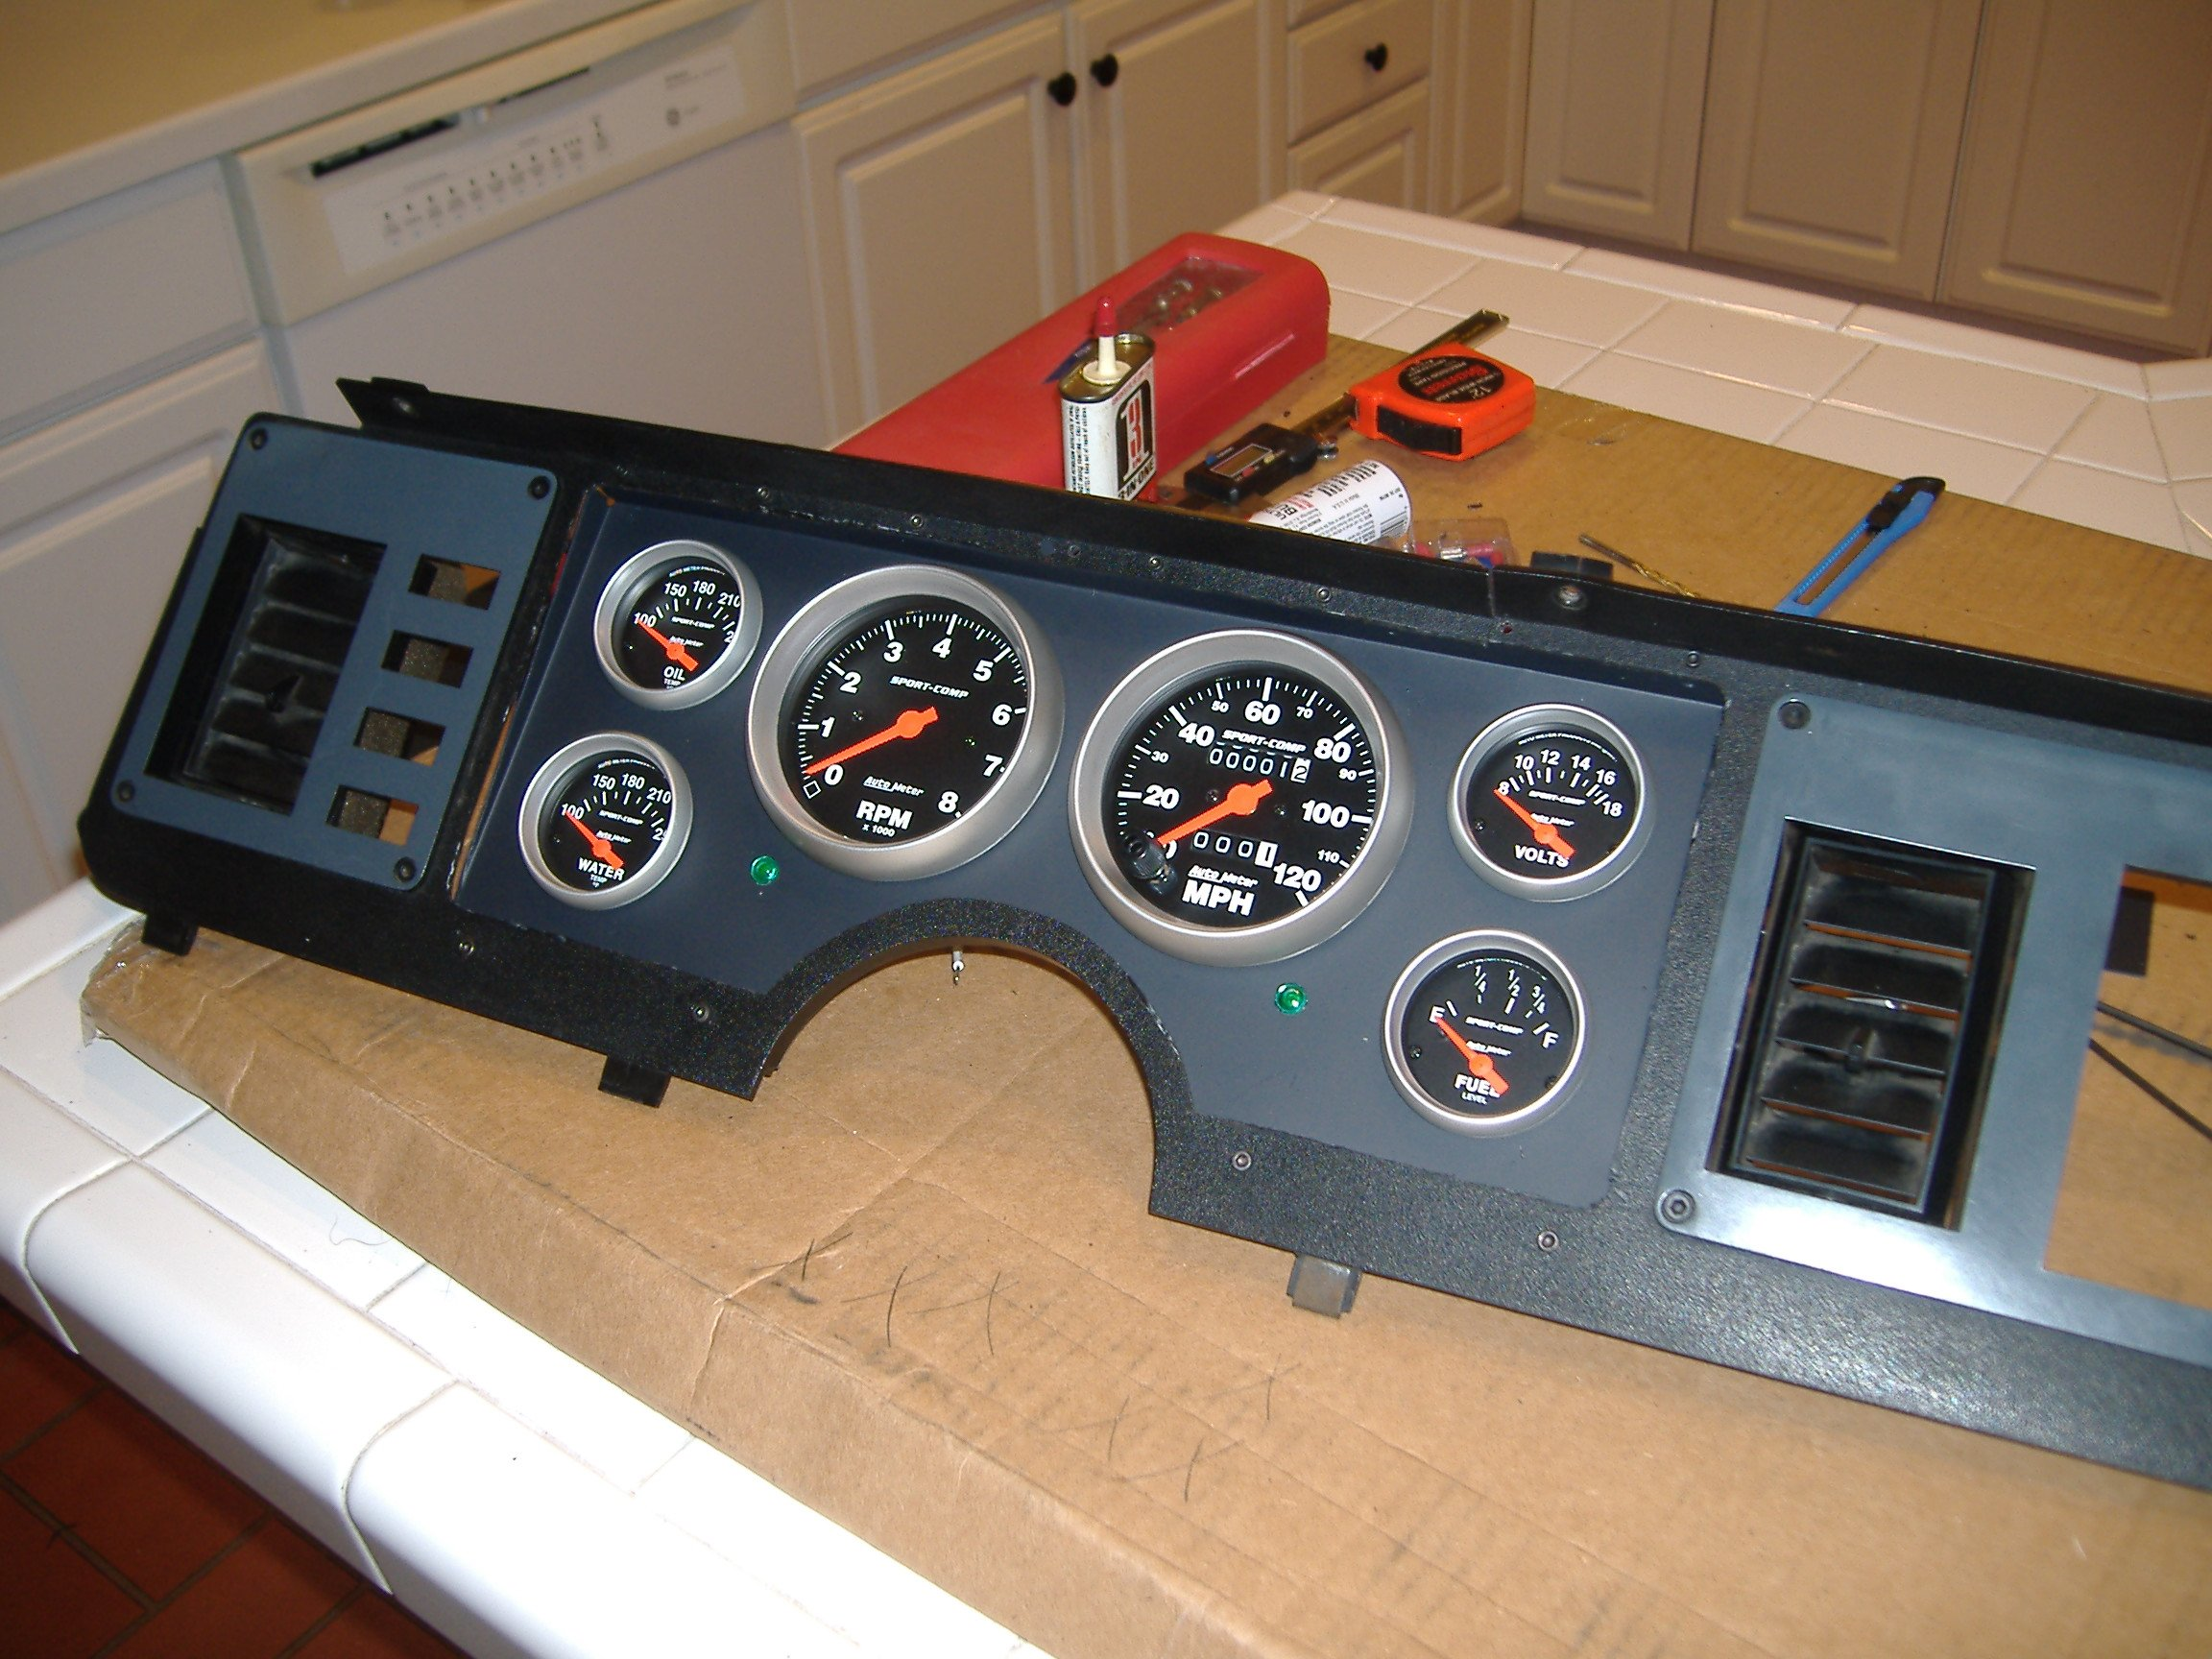 1990 Mustang Gt Alternator Wiring Diagram Library 85 1986 Gauges Ford Forum Instrument Cluster